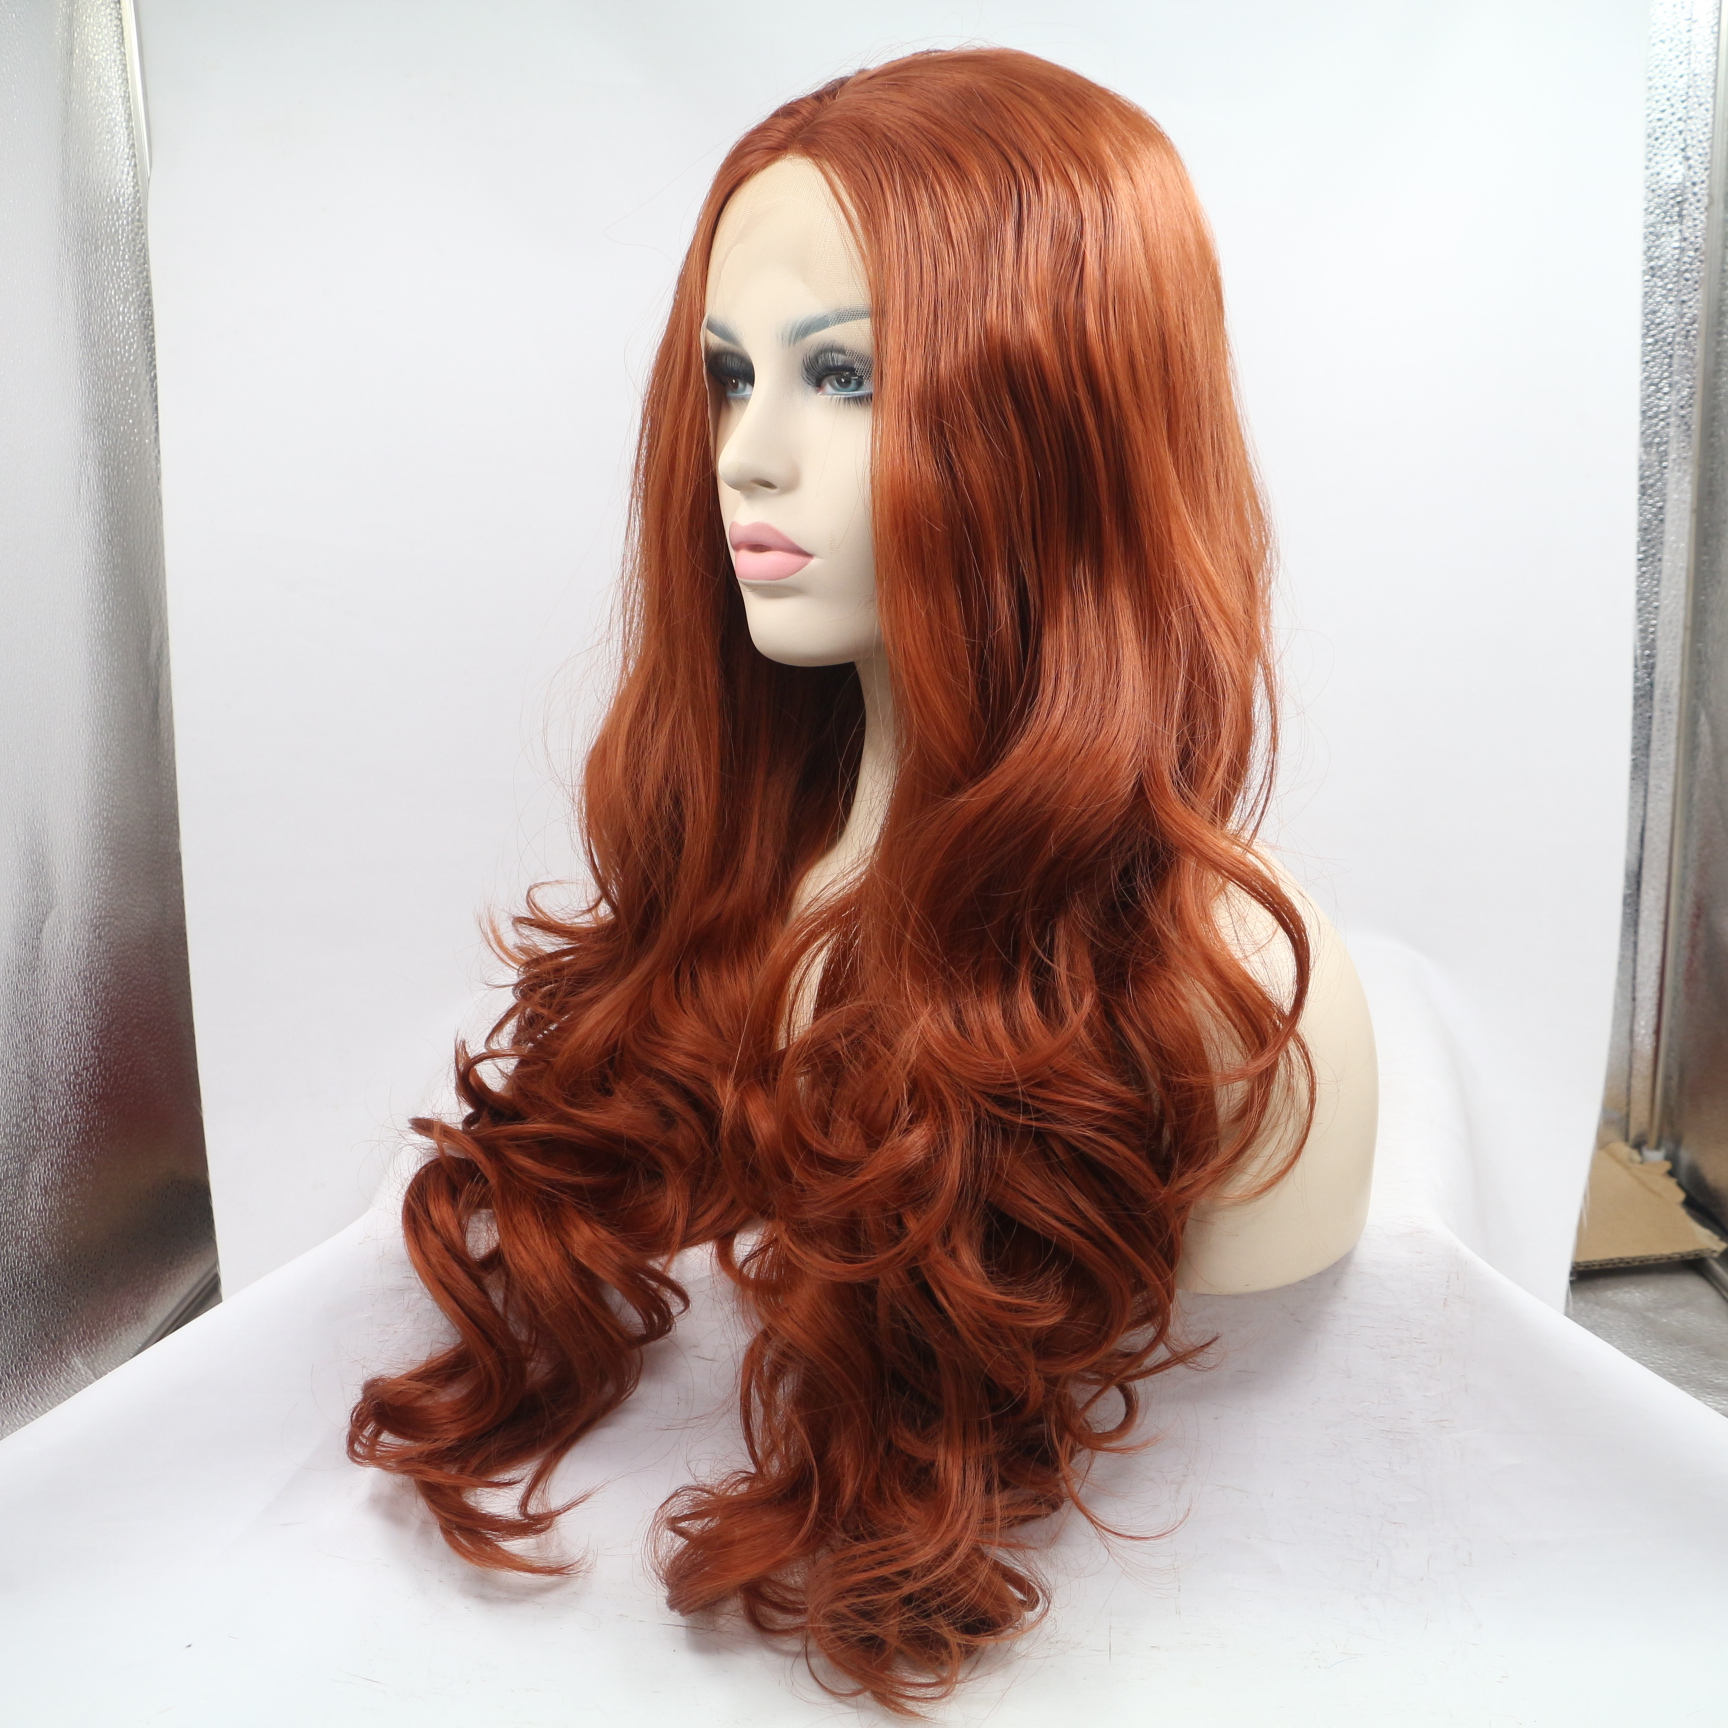 2018 New 350 Copper Red Long Wavy Sythentic Lace Front